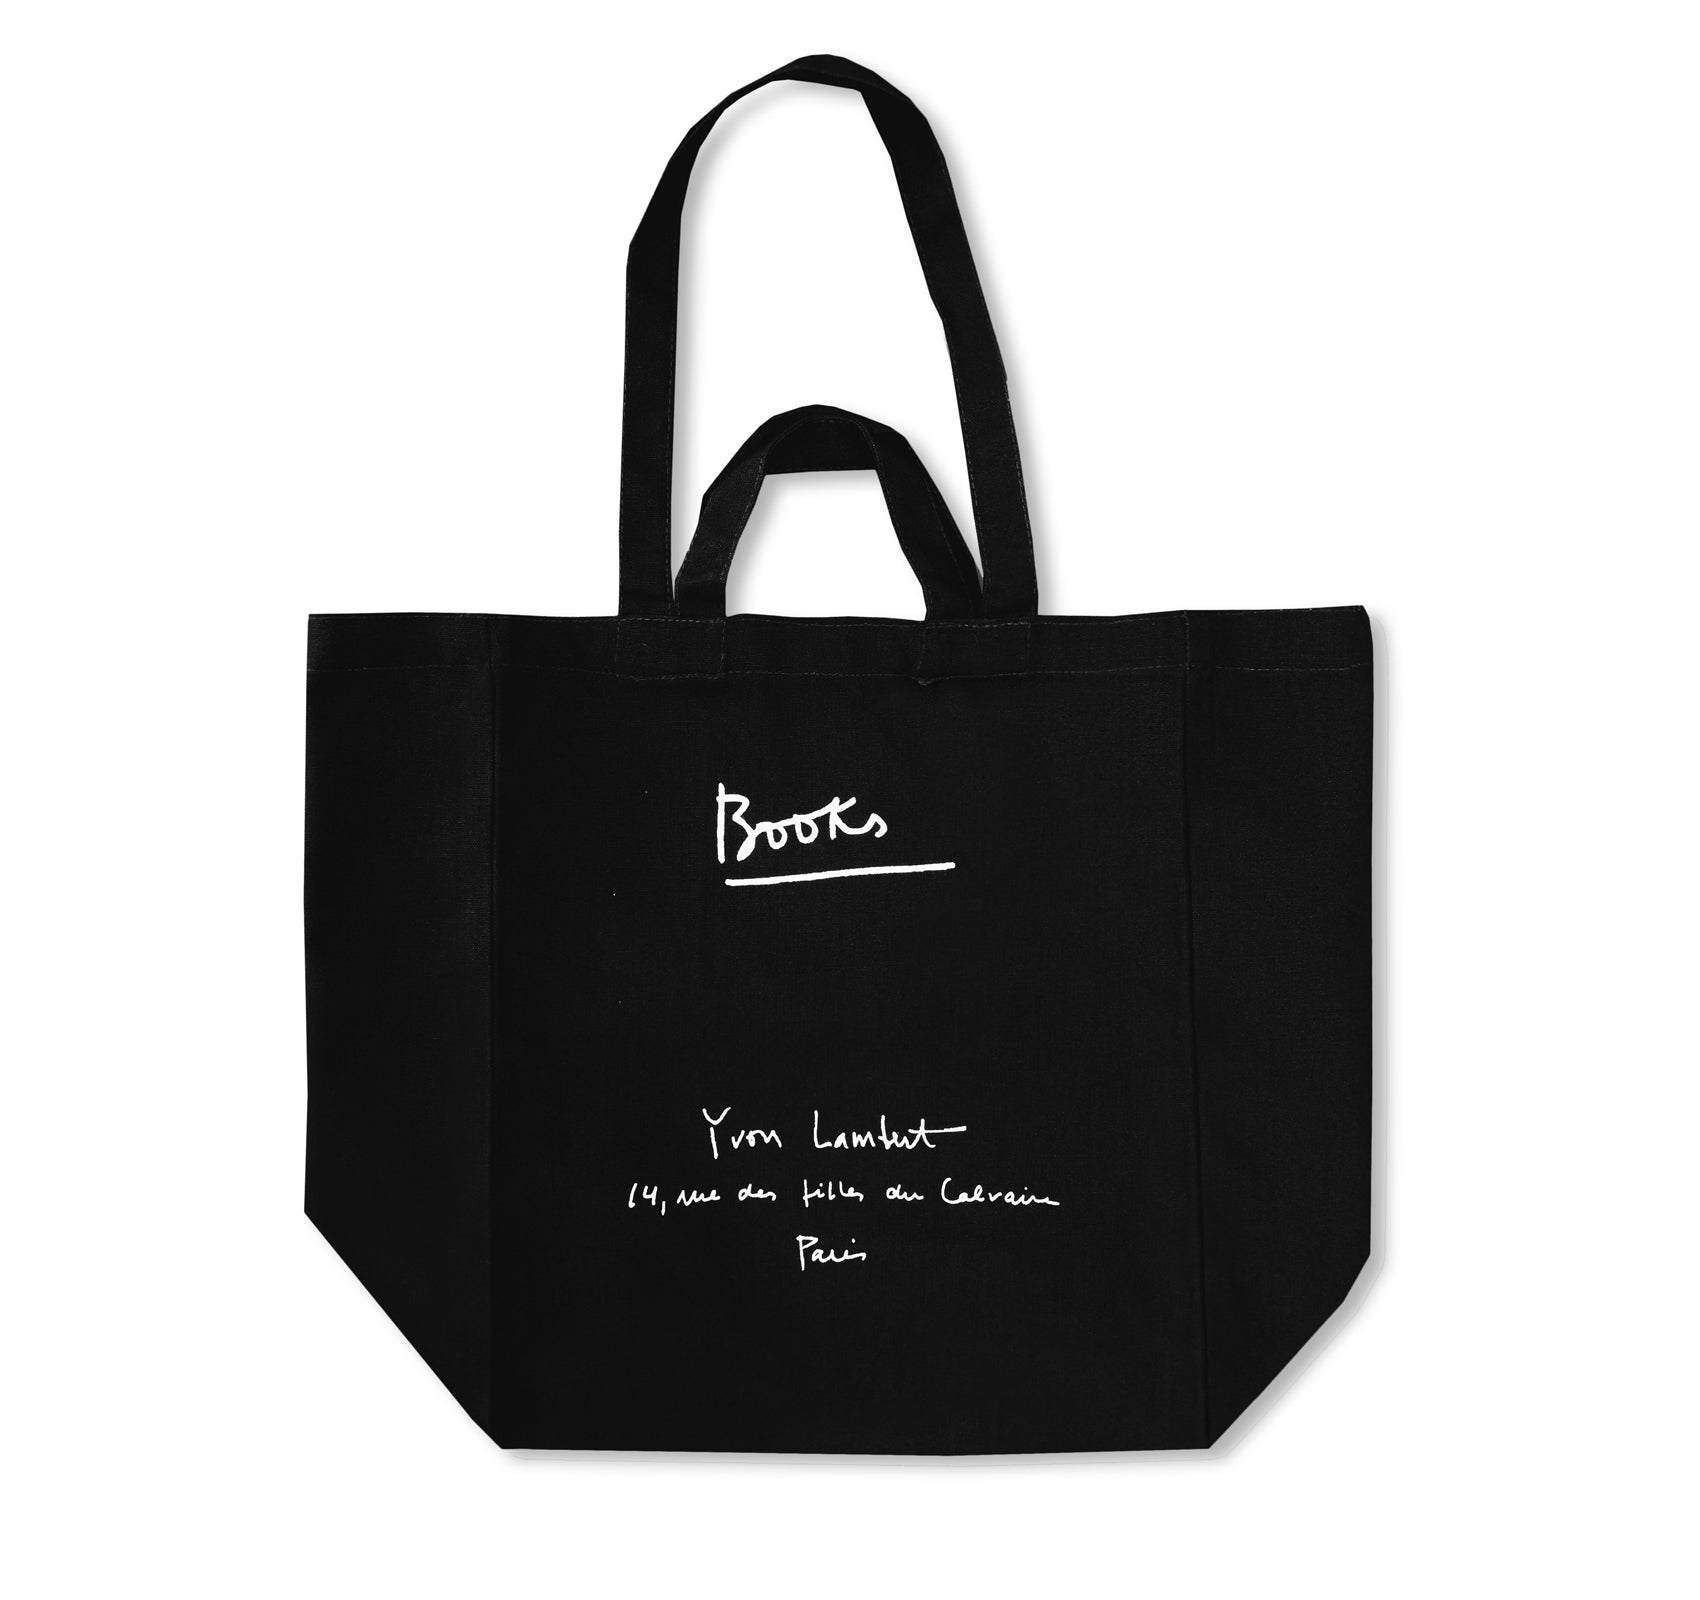 YVON LAMBERT TOTE BAG (LARGE / BLACK)